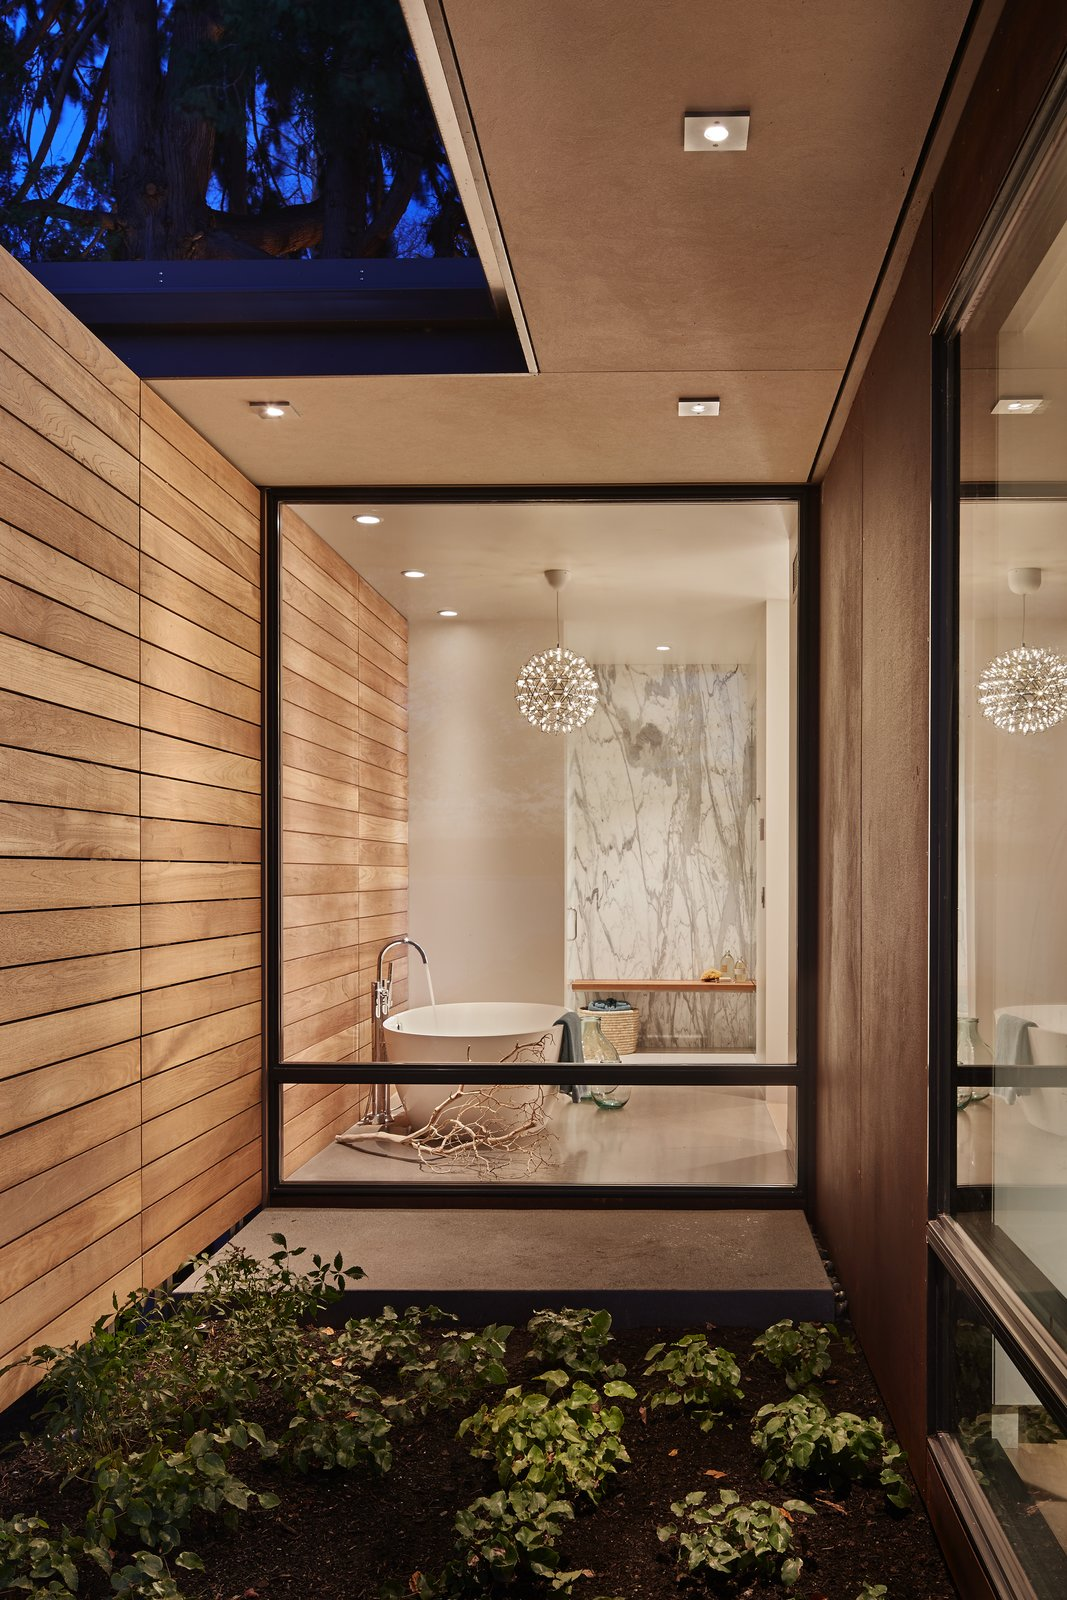 Bath Room, Concrete Floor, Freestanding Tub, Enclosed Shower, Pendant Lighting, and Stone Slab Wall Master Bath  Union Bay Residence by DeForest Architects